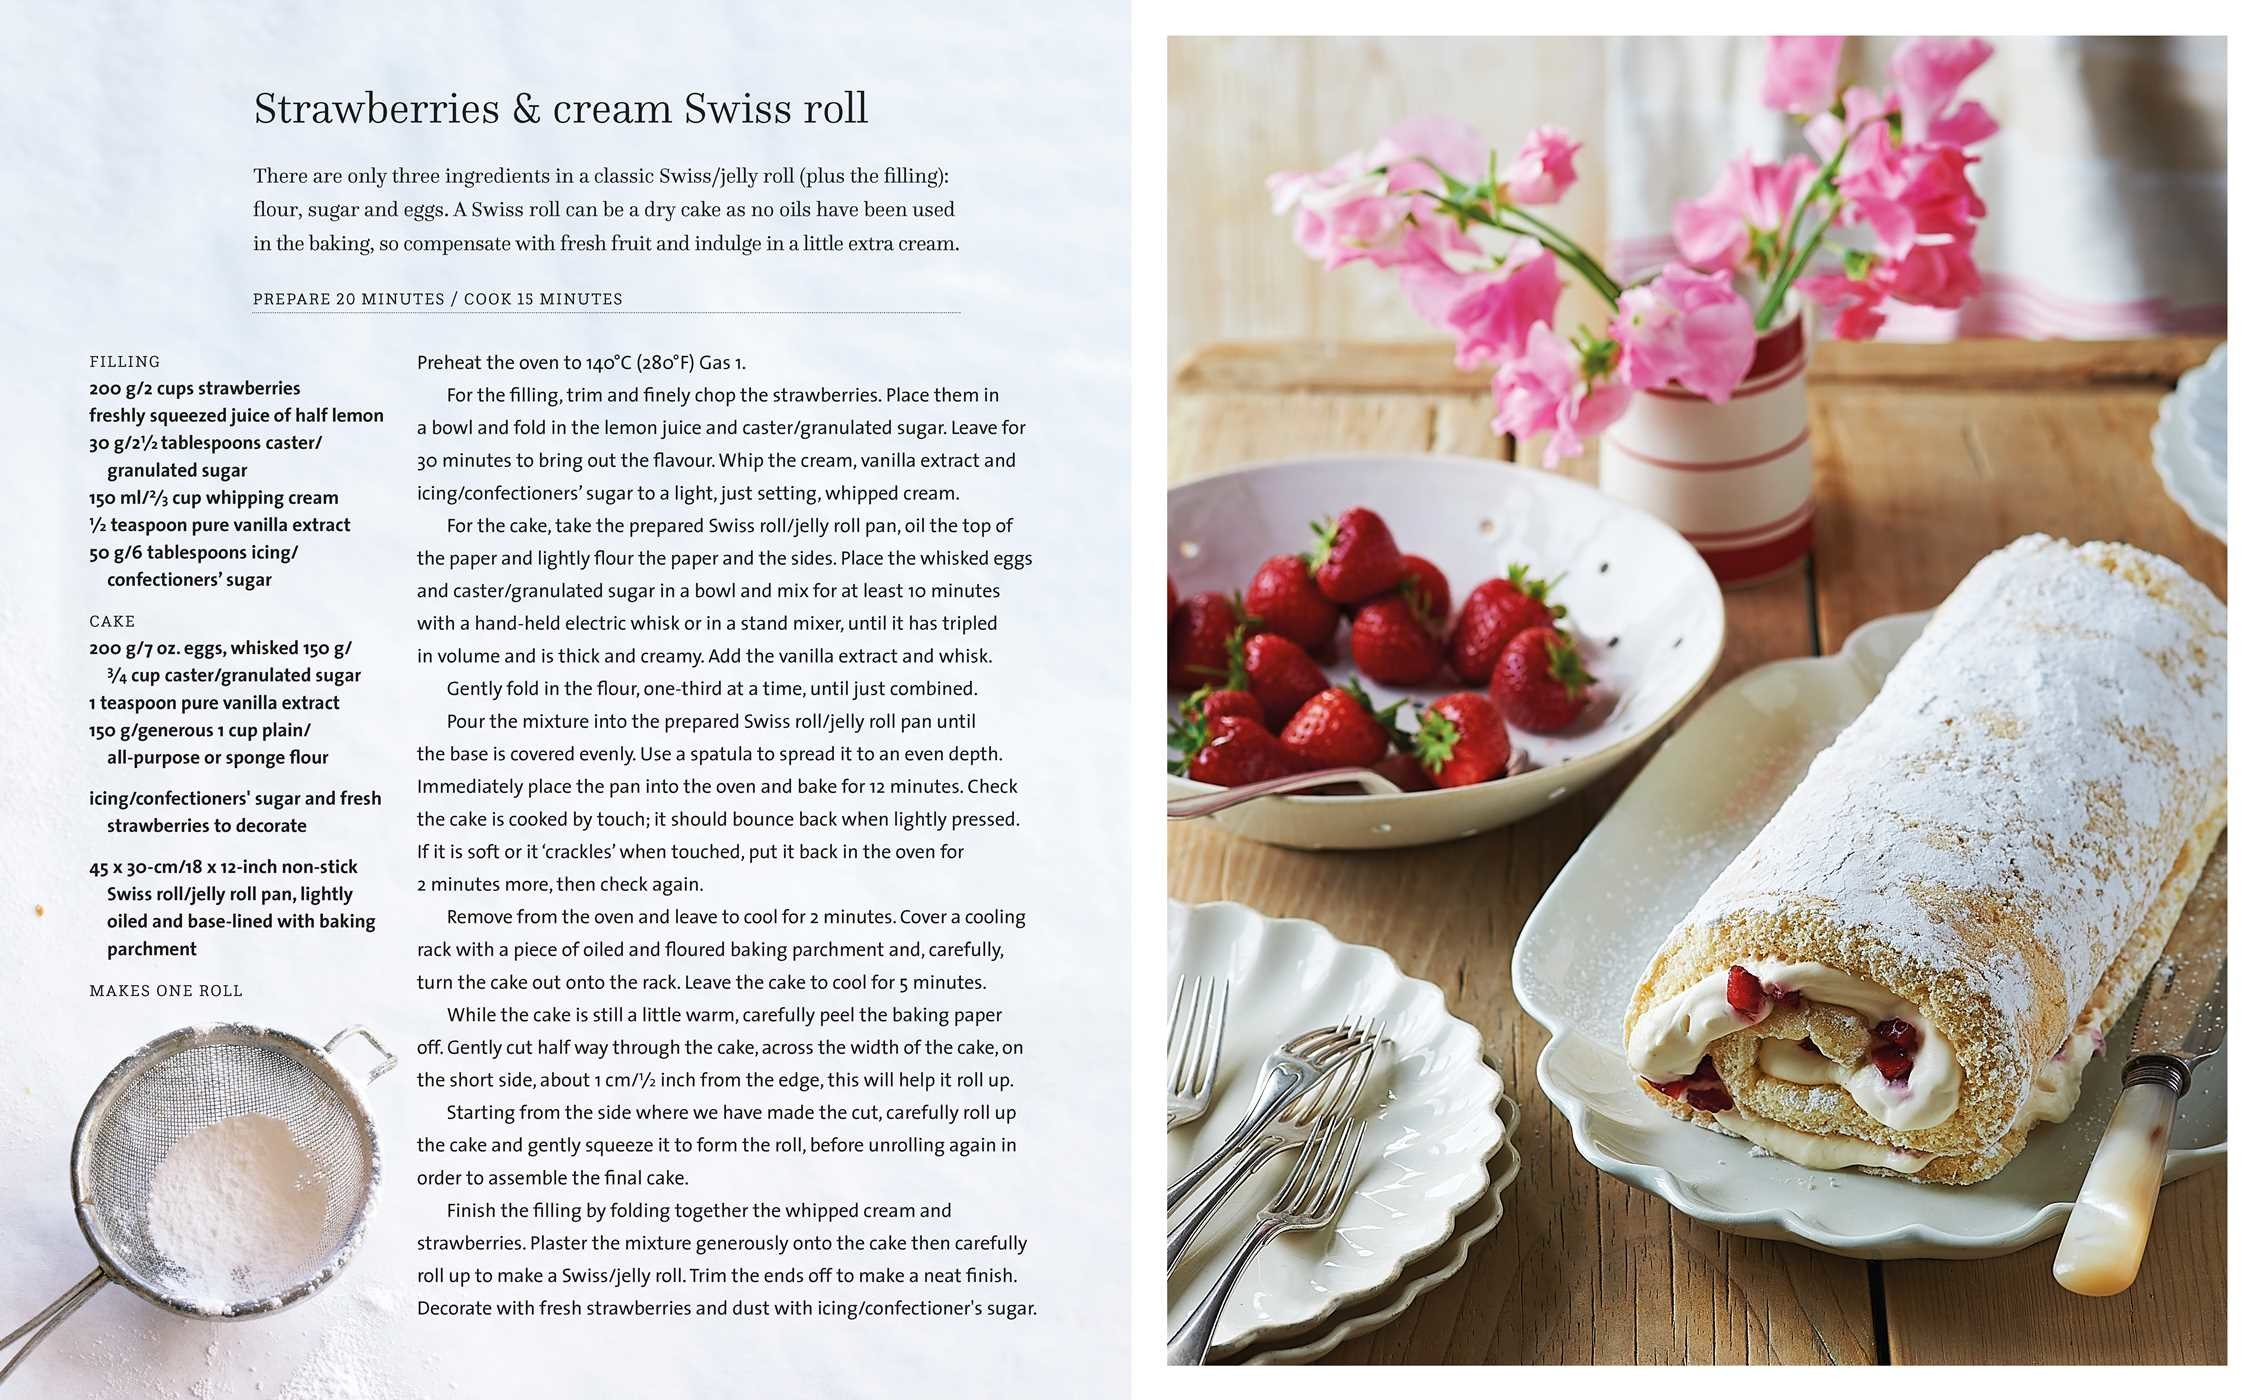 Afternoon Tea at Bramble Cafe | Book by Mat Follas